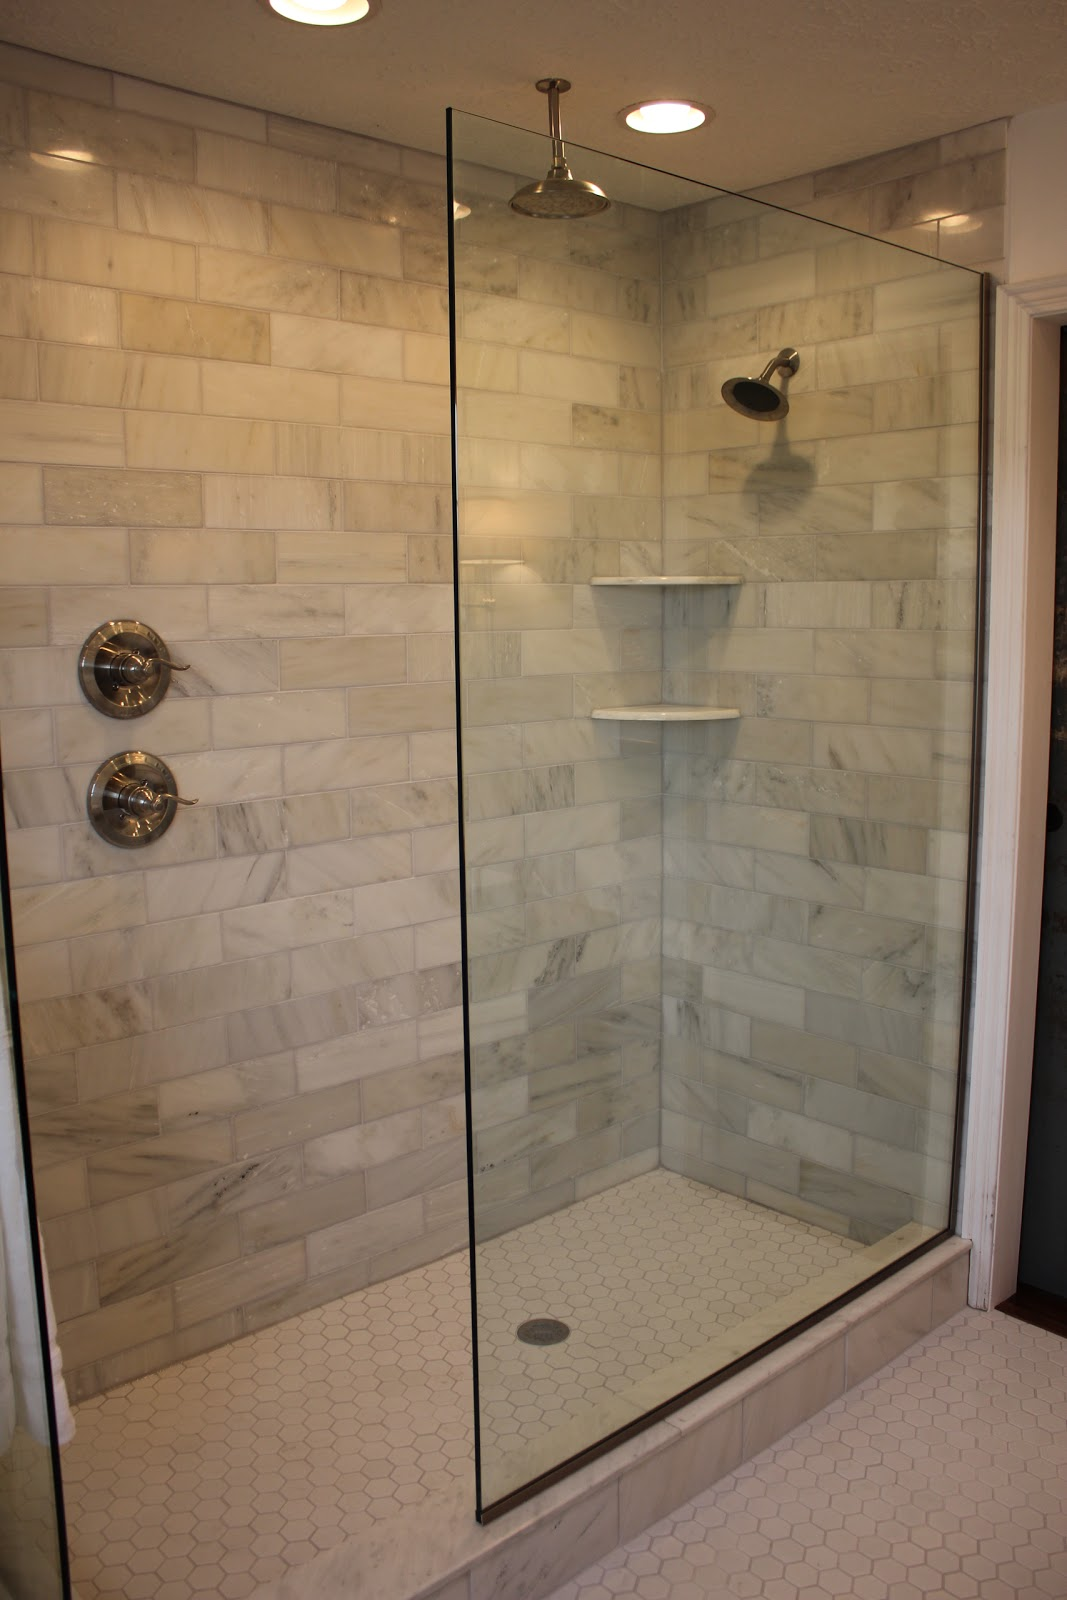 Design decor and remodel projects Glass bathroom design ideas